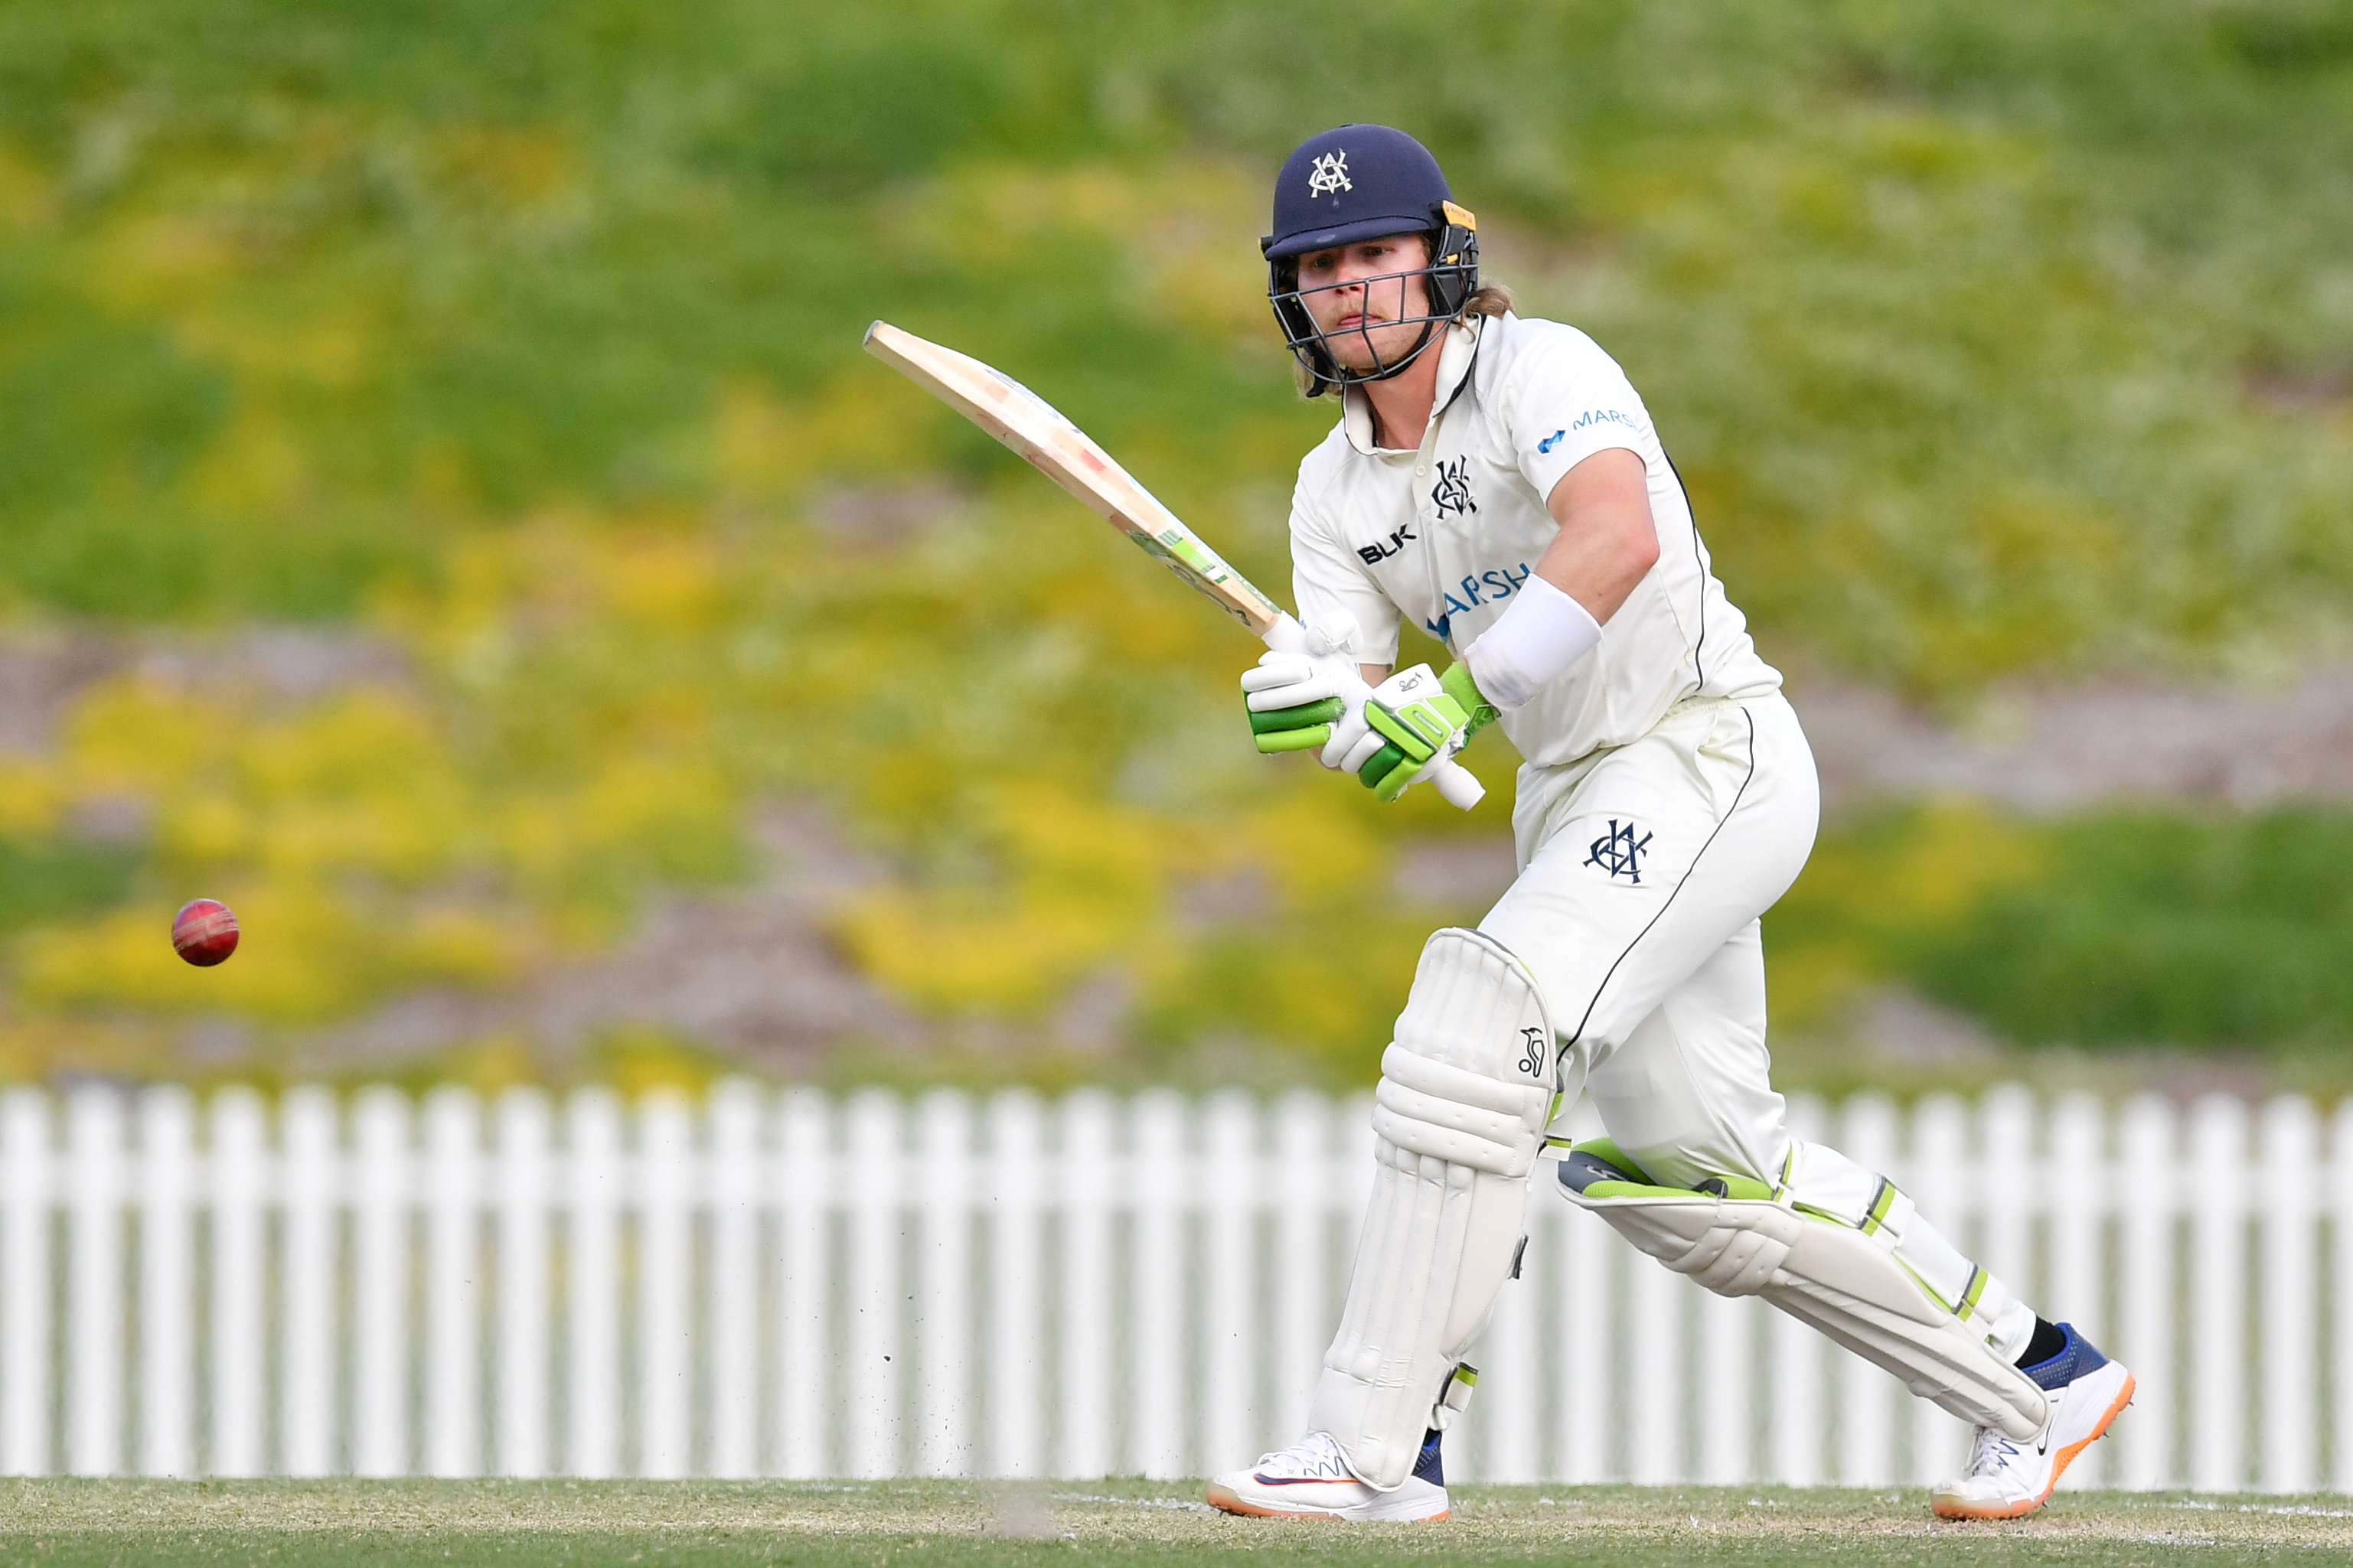 Will Pucovski of Victoria bats during day 3 of the Round 4 Marsh Sheffield Shield cricket match between the Victoria Bushrangers and the Western Australia Western Warriors at Karen Rolton Oval in Adelaide, November 10, 2020. totaken November 10, 2020. Photo: Reuters